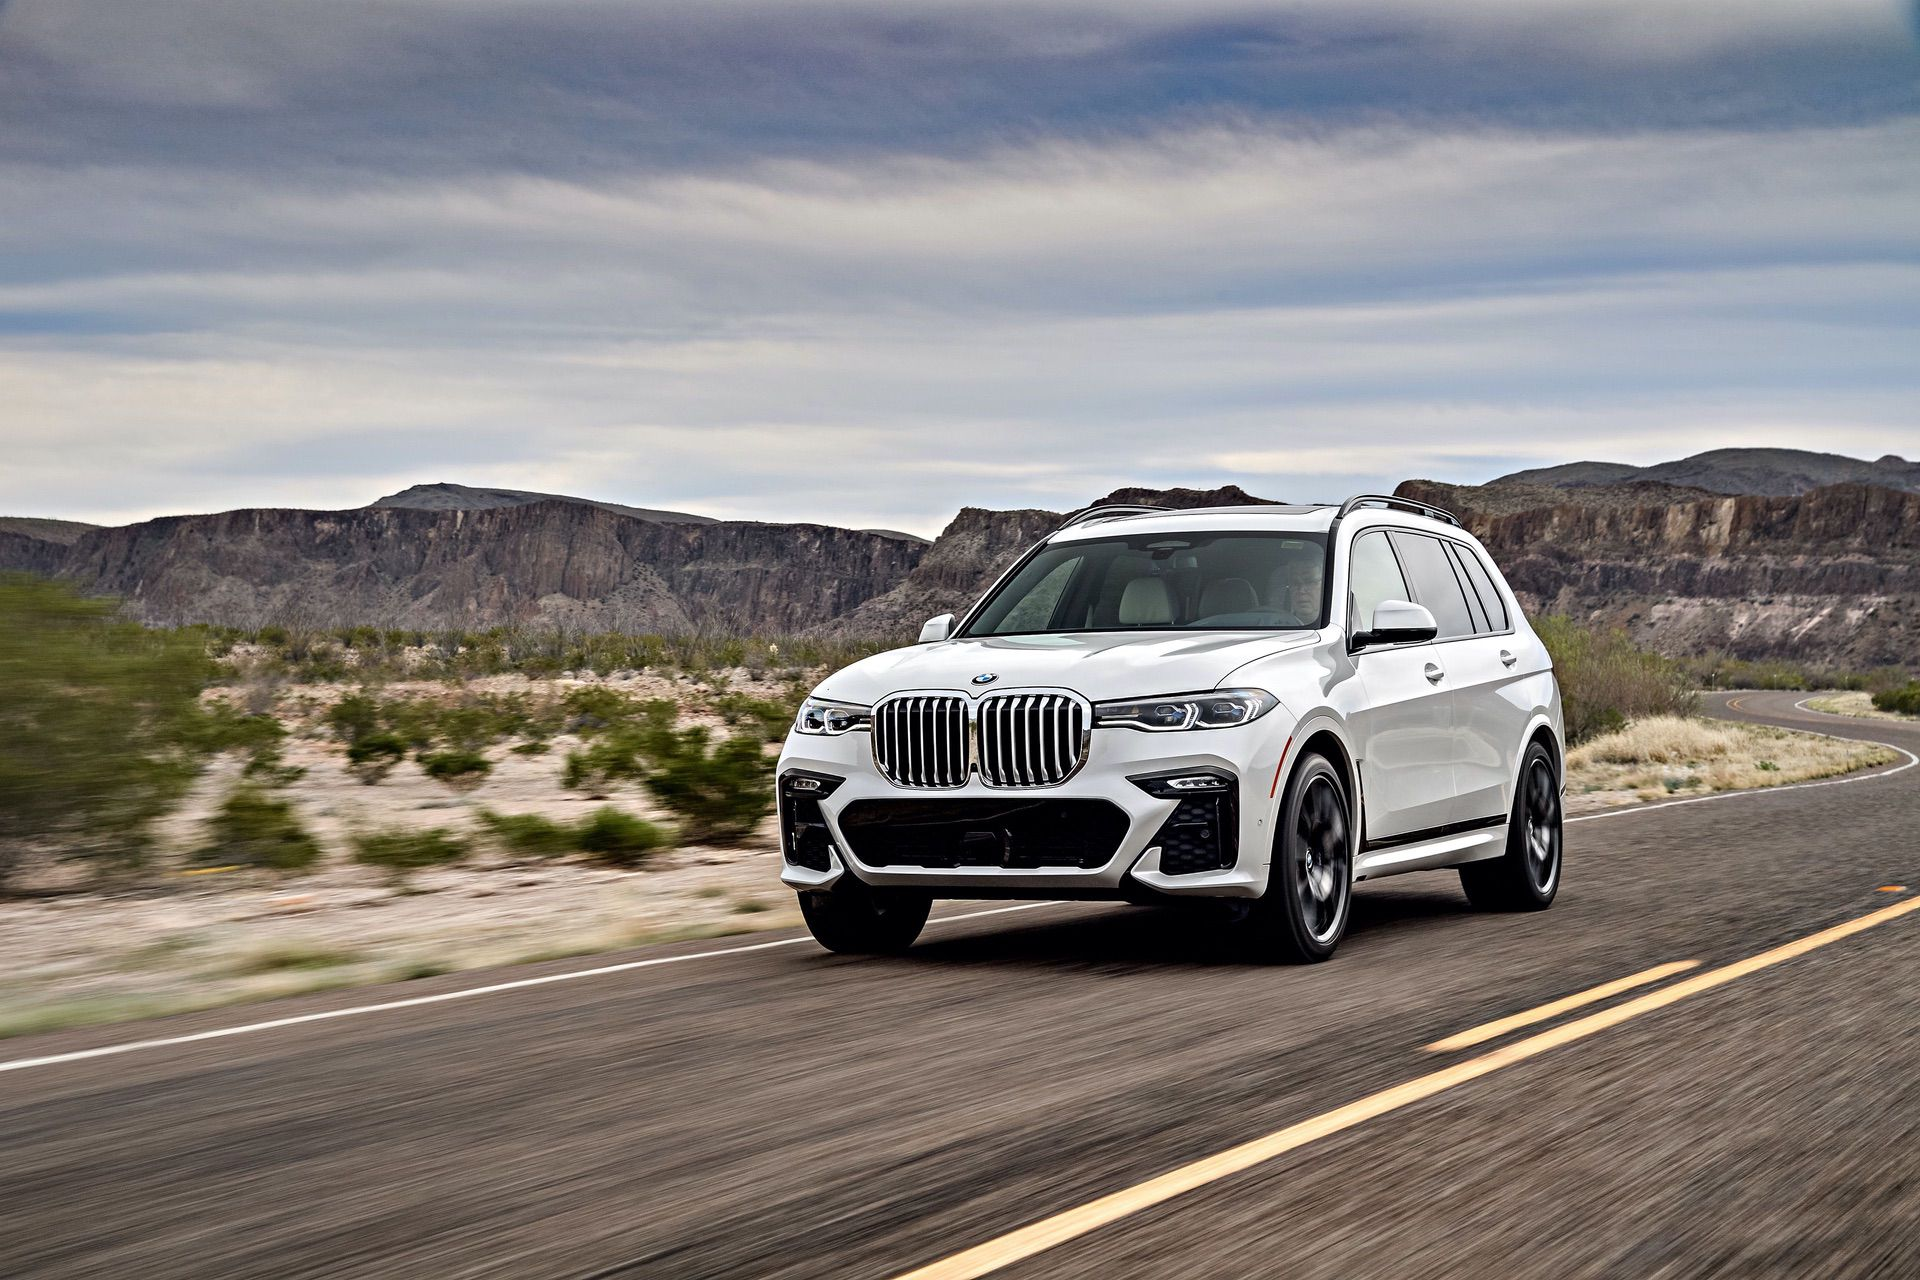 BMW Jacksonville Fl >> Video: Check Out the BMW X7 Production Line